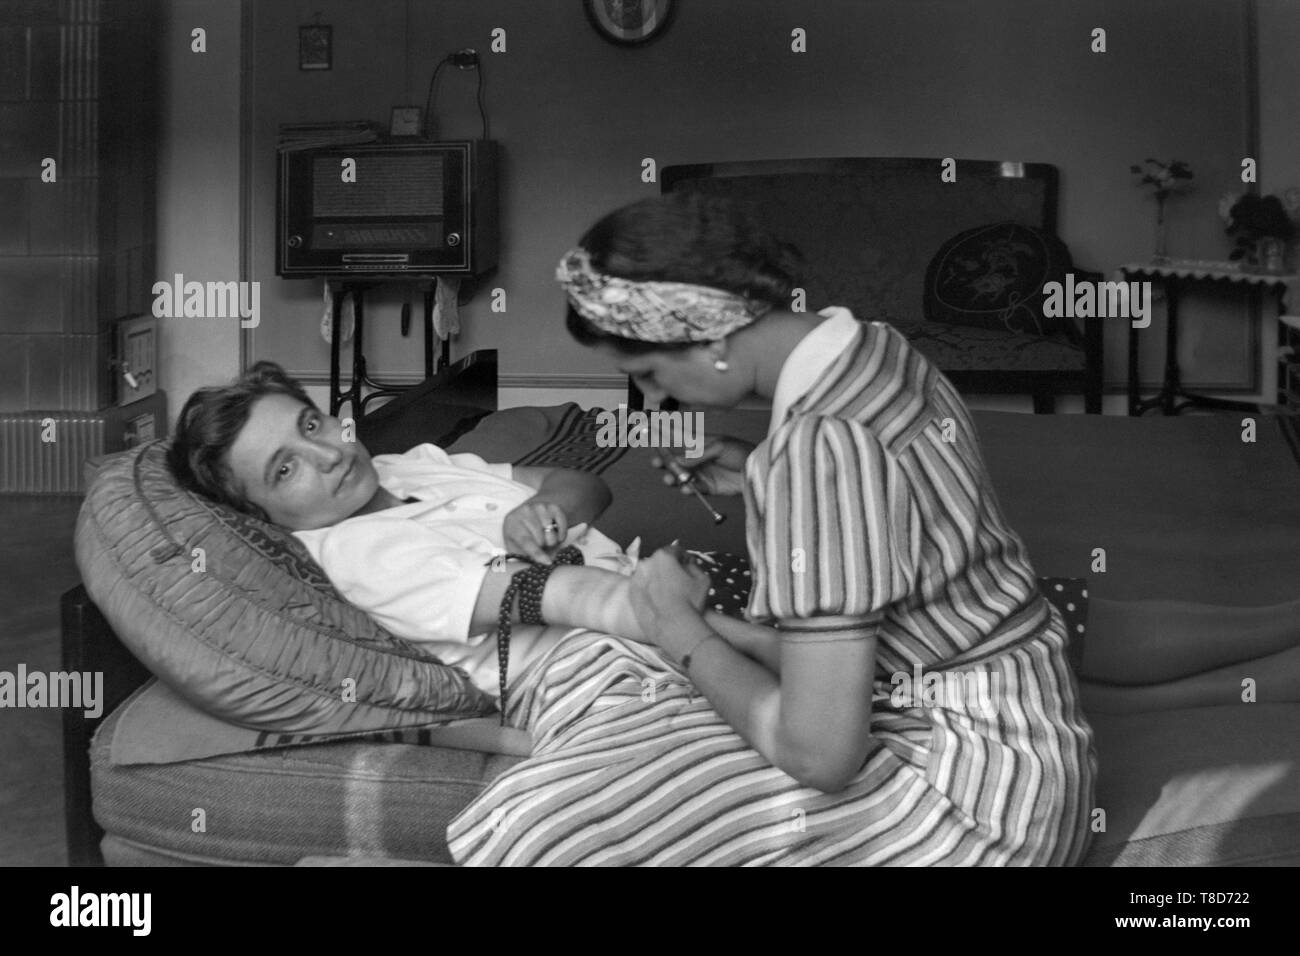 woman laying down on a couch preparing to have an injection in her arm by another lady 1930s hungary Stock Photo